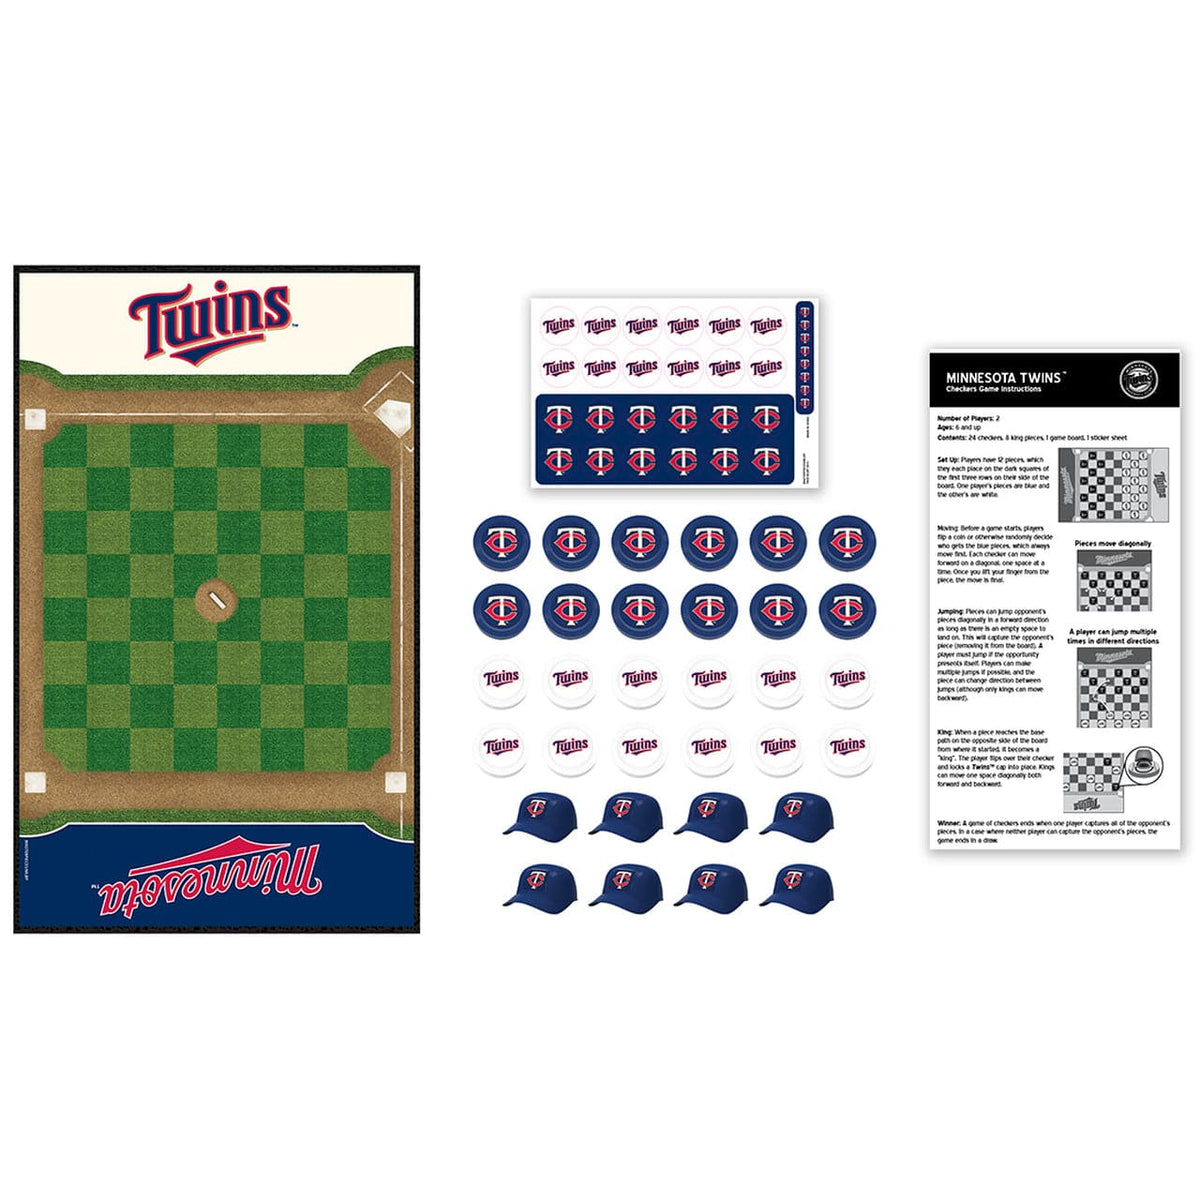 Minnesota Twins Checkers Board Game